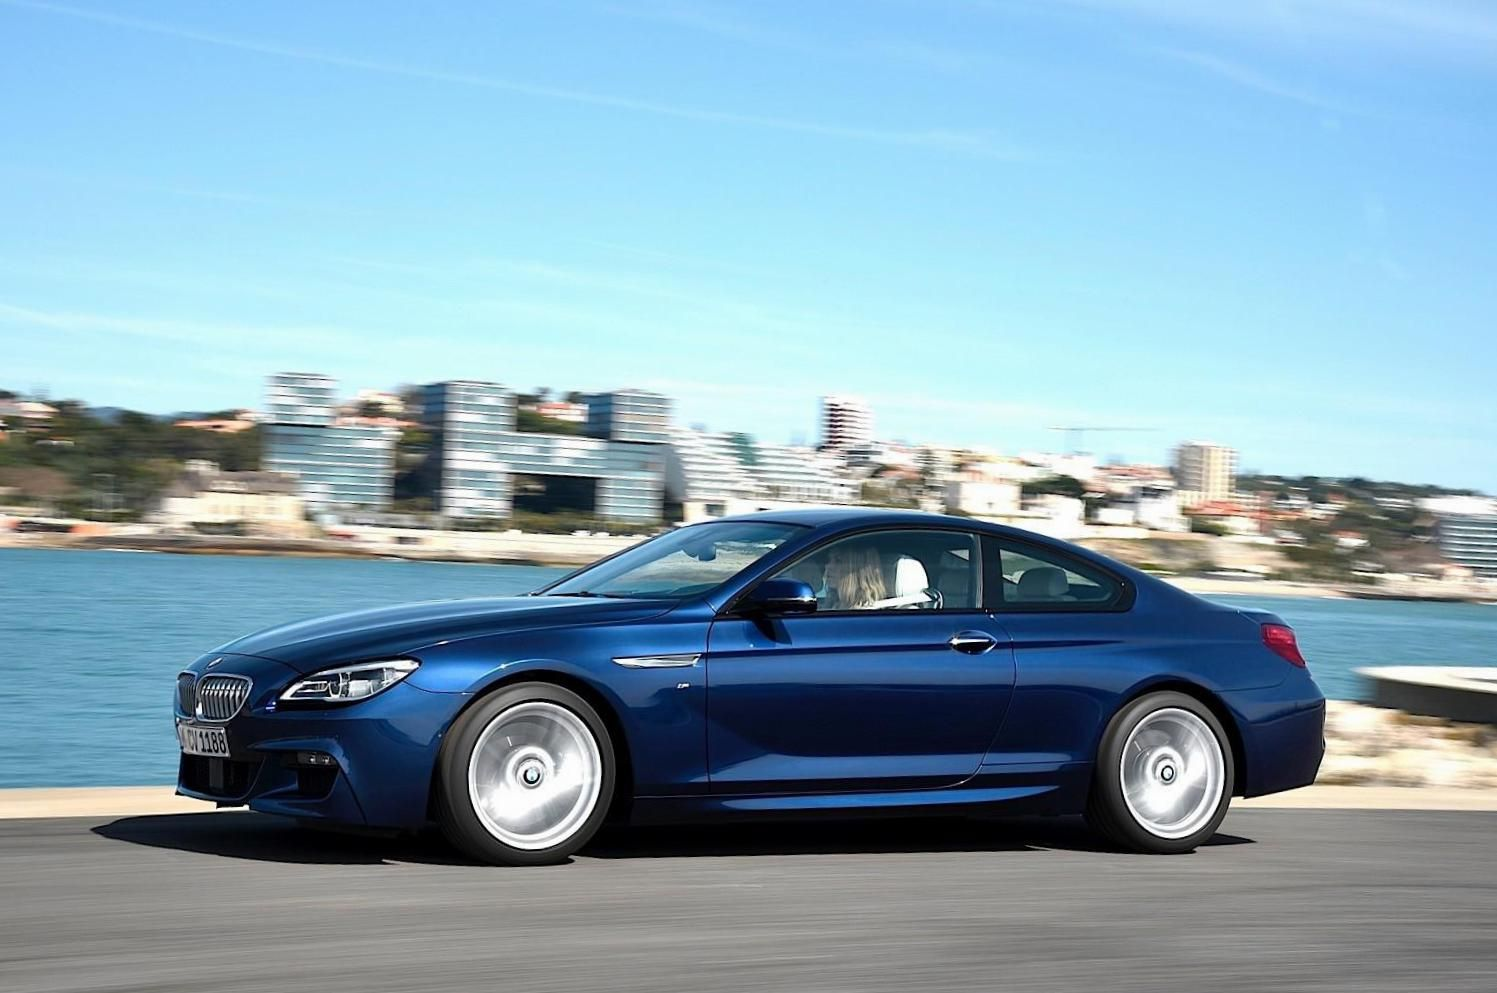 6 Series Coupe (F13) BMW review - http://autotras.com